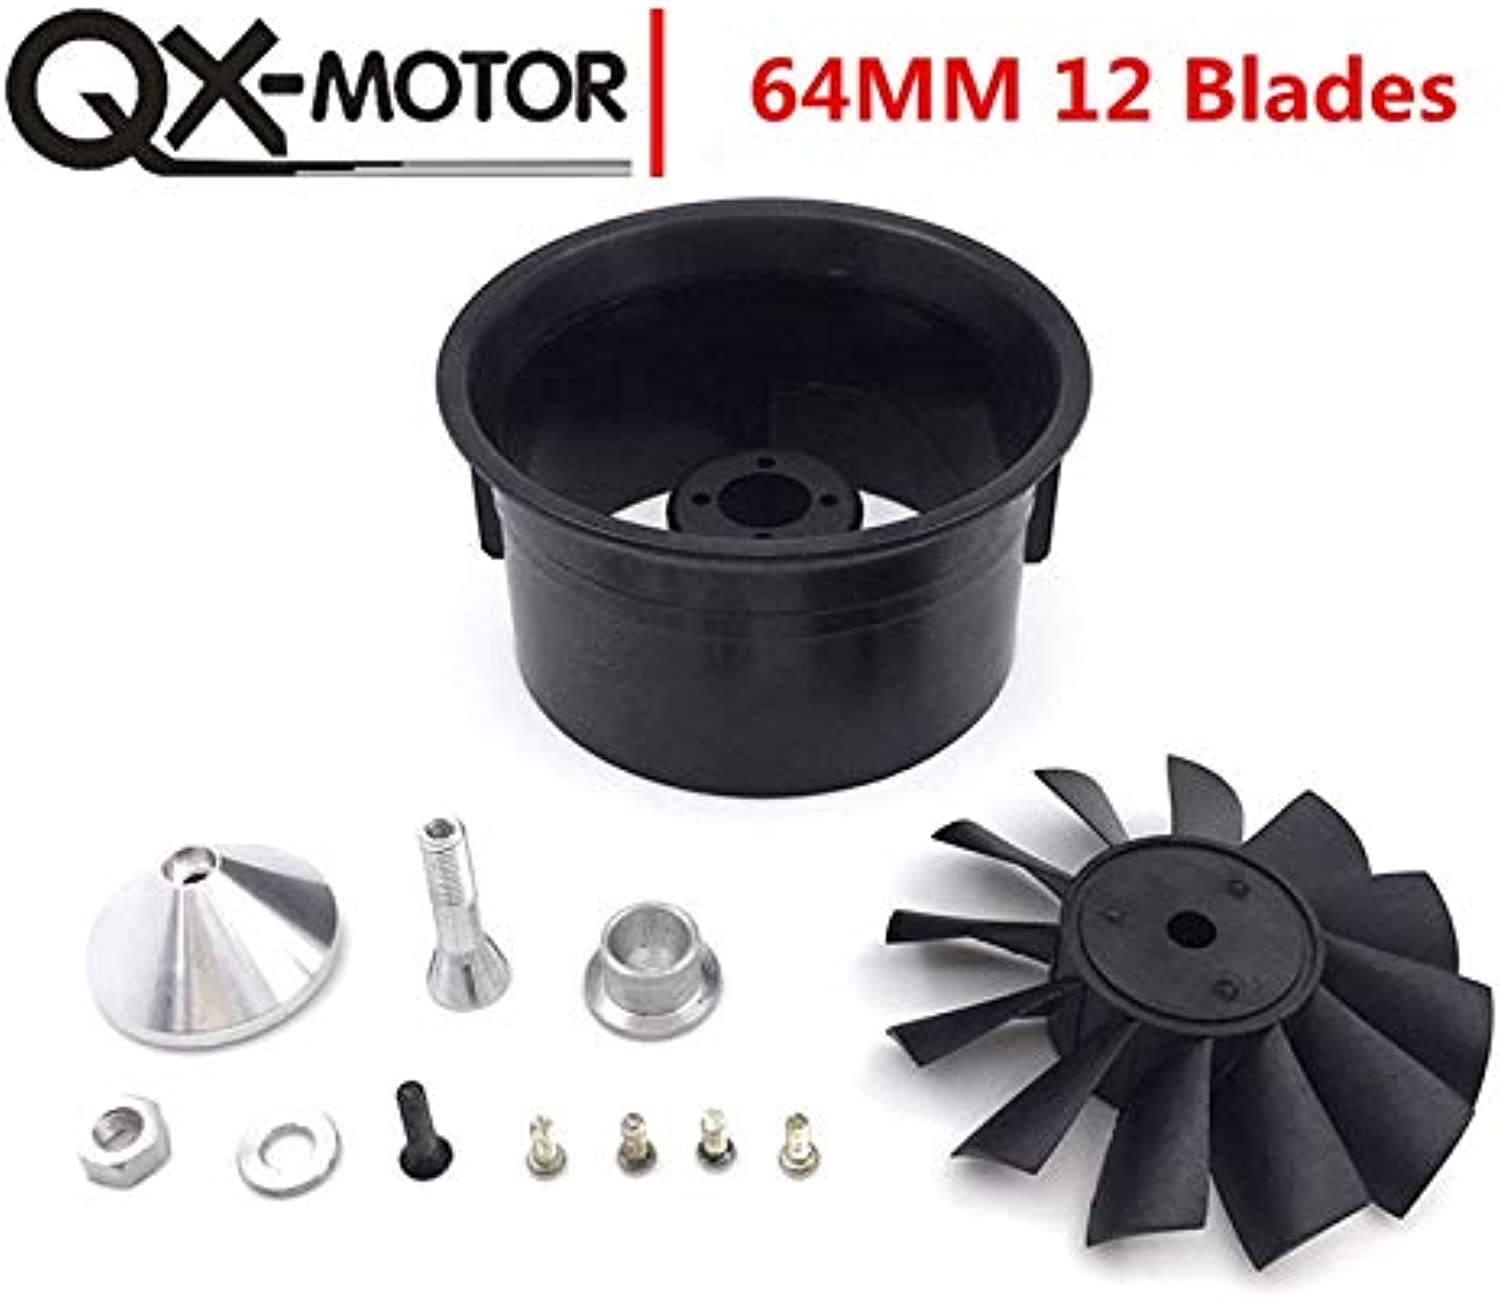 Laliva 64mm EDF with 12 Blades Ducted Fan Without Motor Suit for RC Airplanes